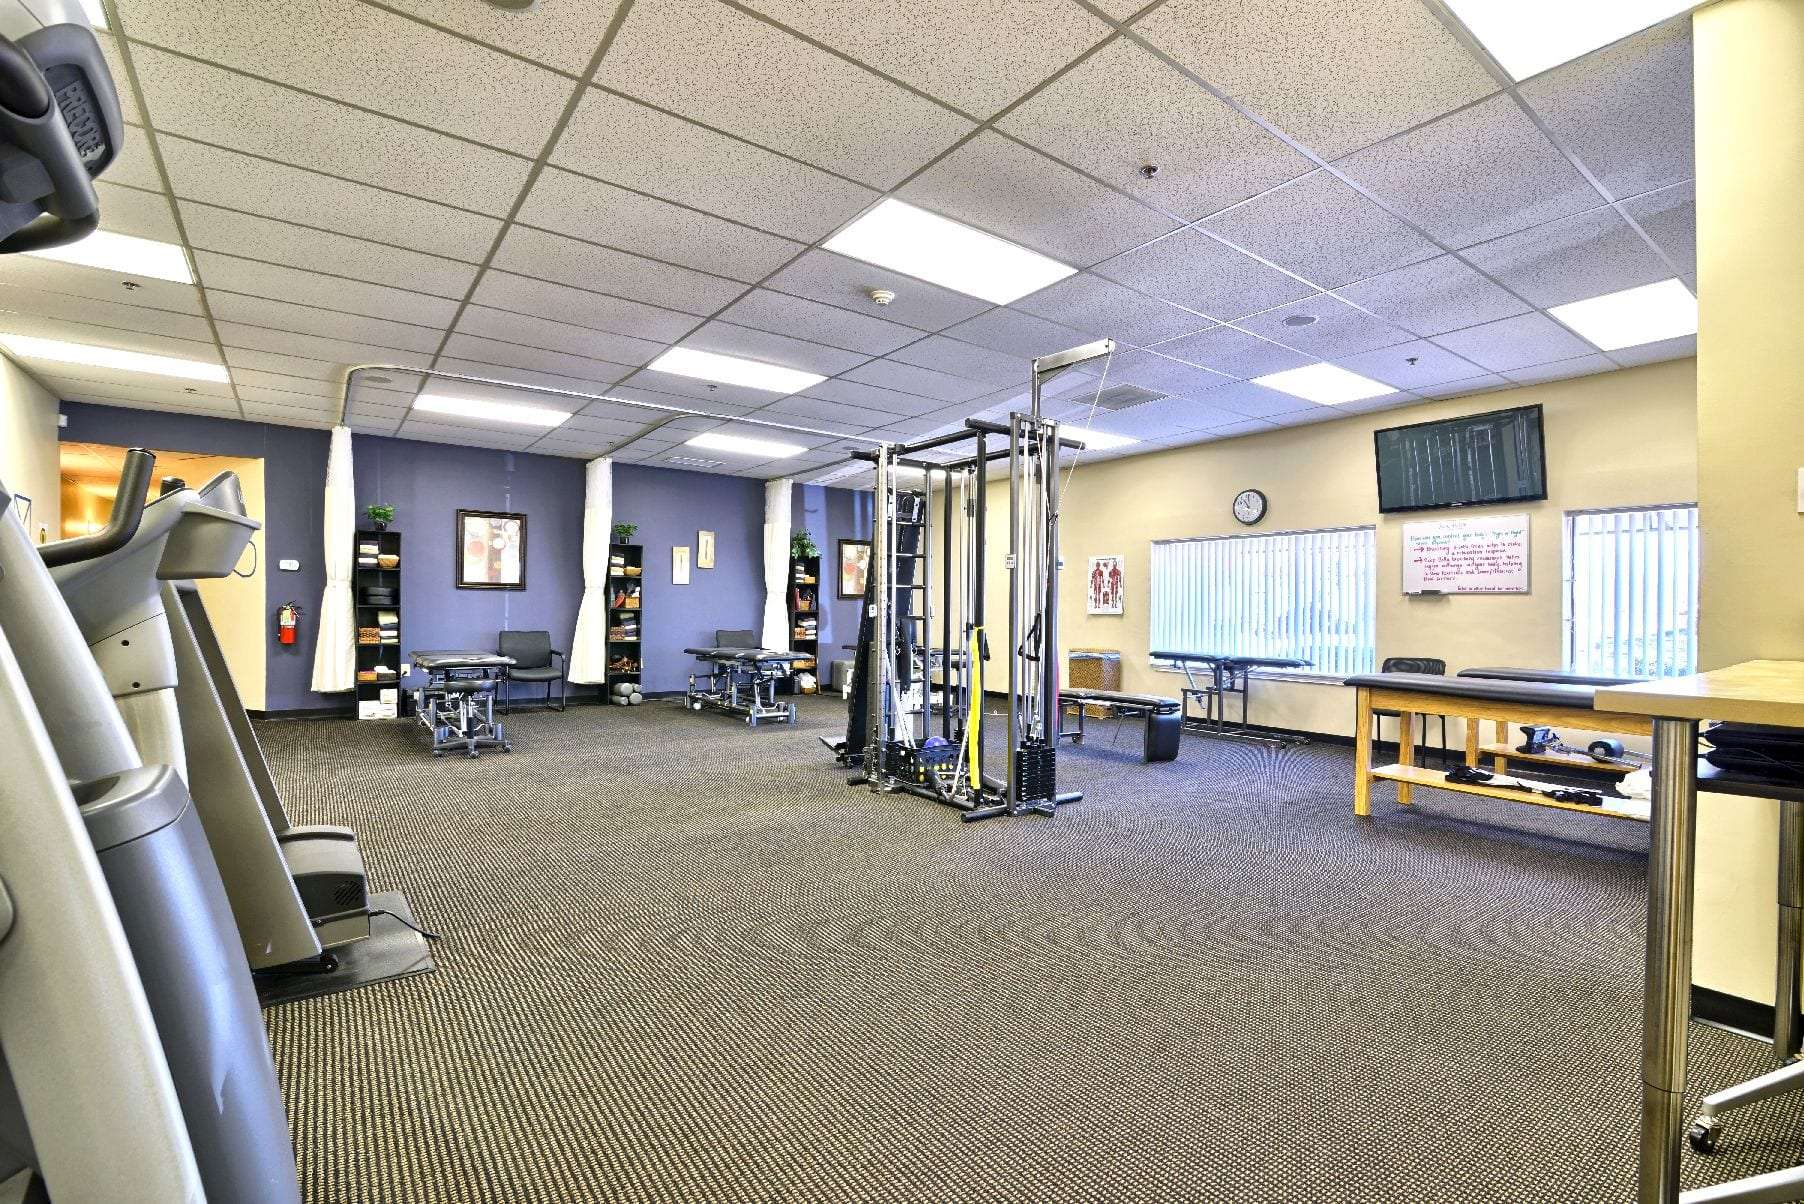 An image of the inside of our physical therapy clinic in Middleton, Massachusetts.